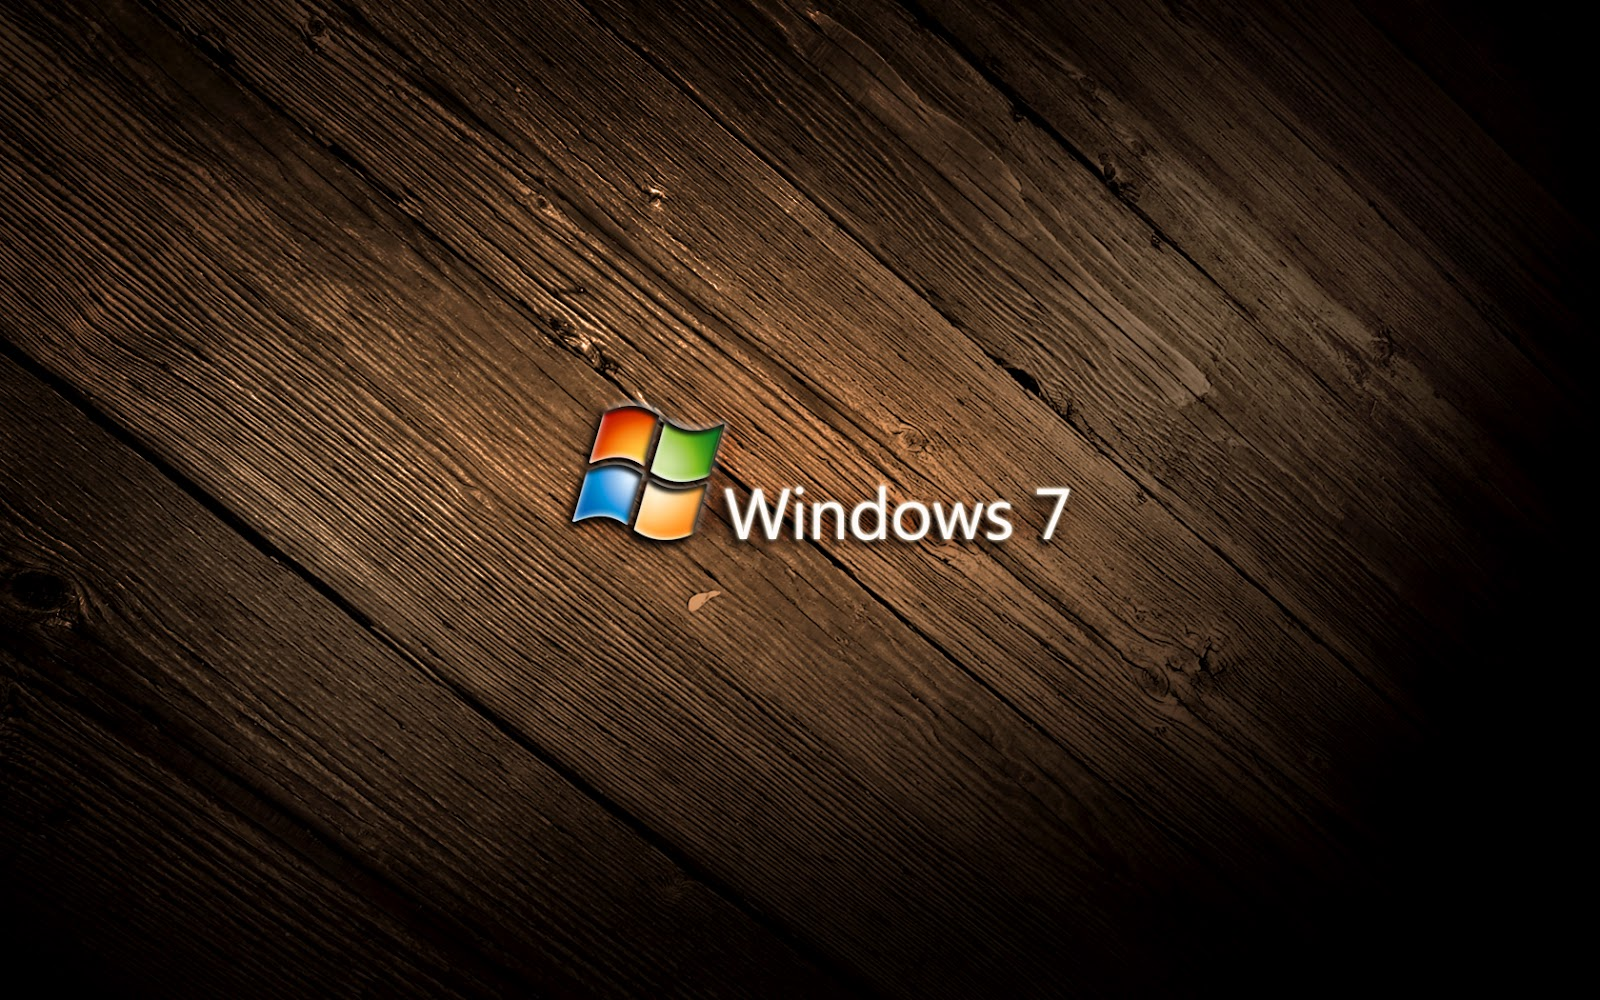 hd desktop wallpapers for windows 7,logo,operating system,text,font,wood